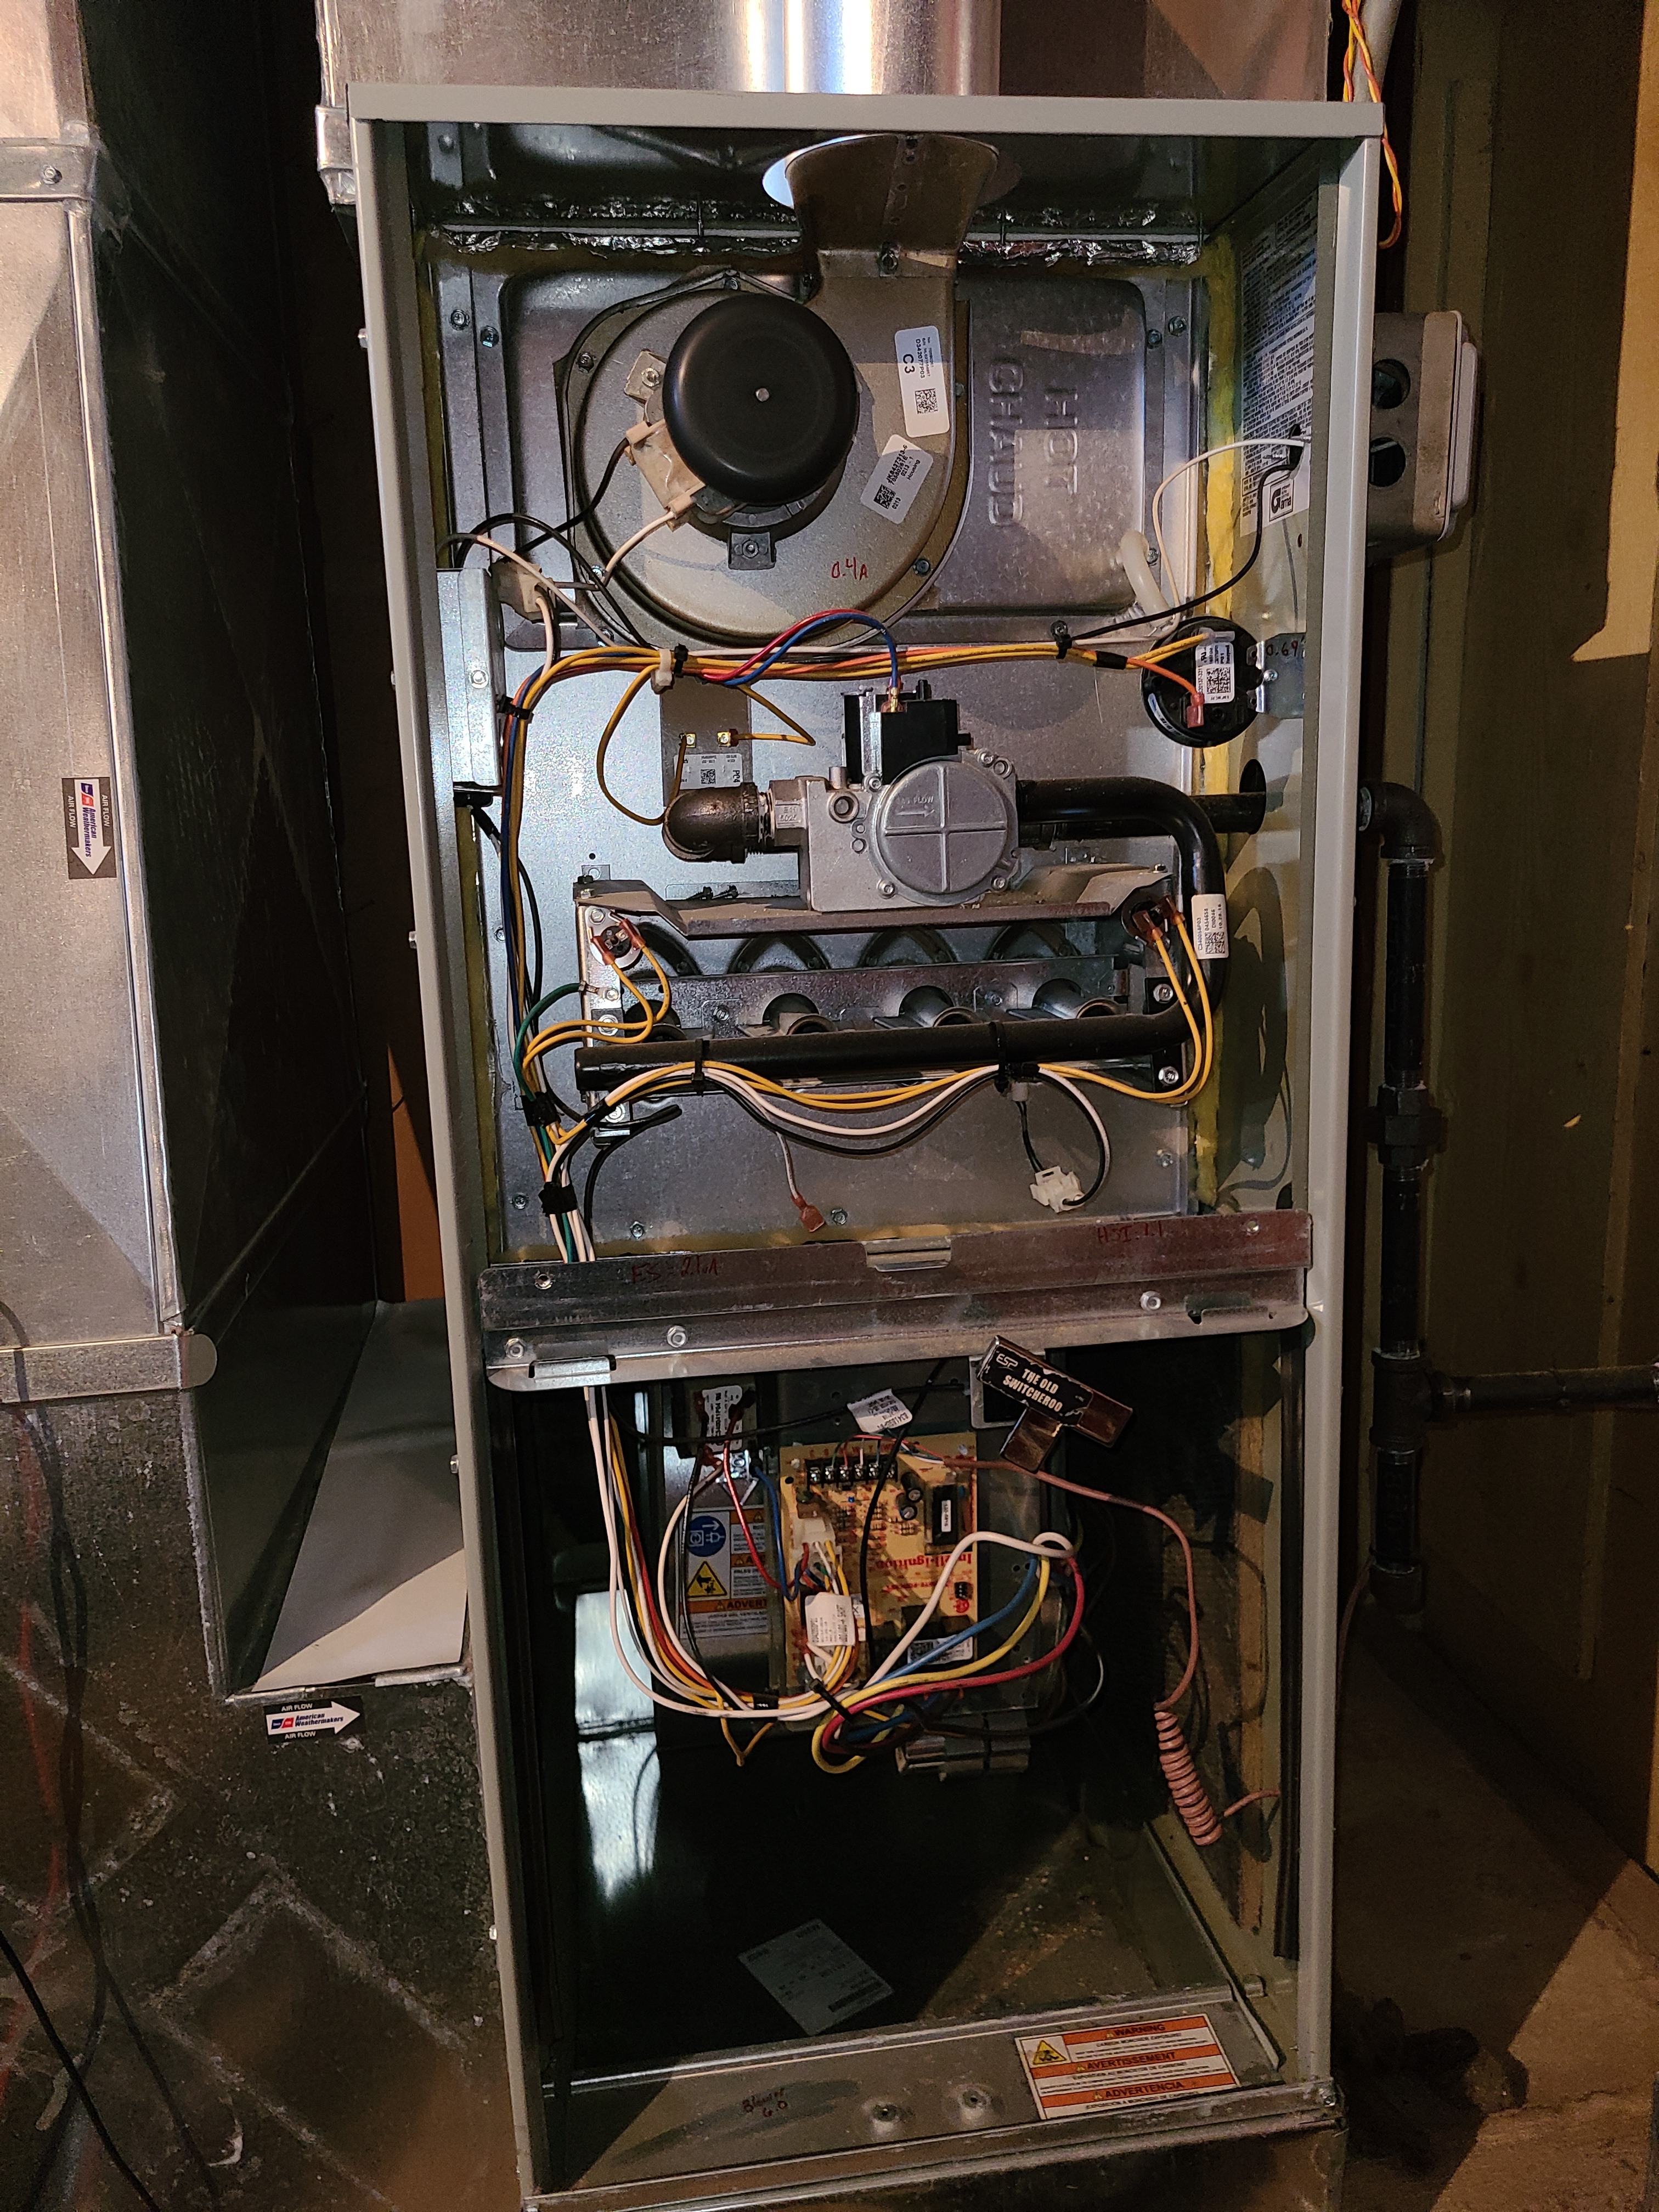 American Standard furnace clean and check. System tuned up and ready for winter.